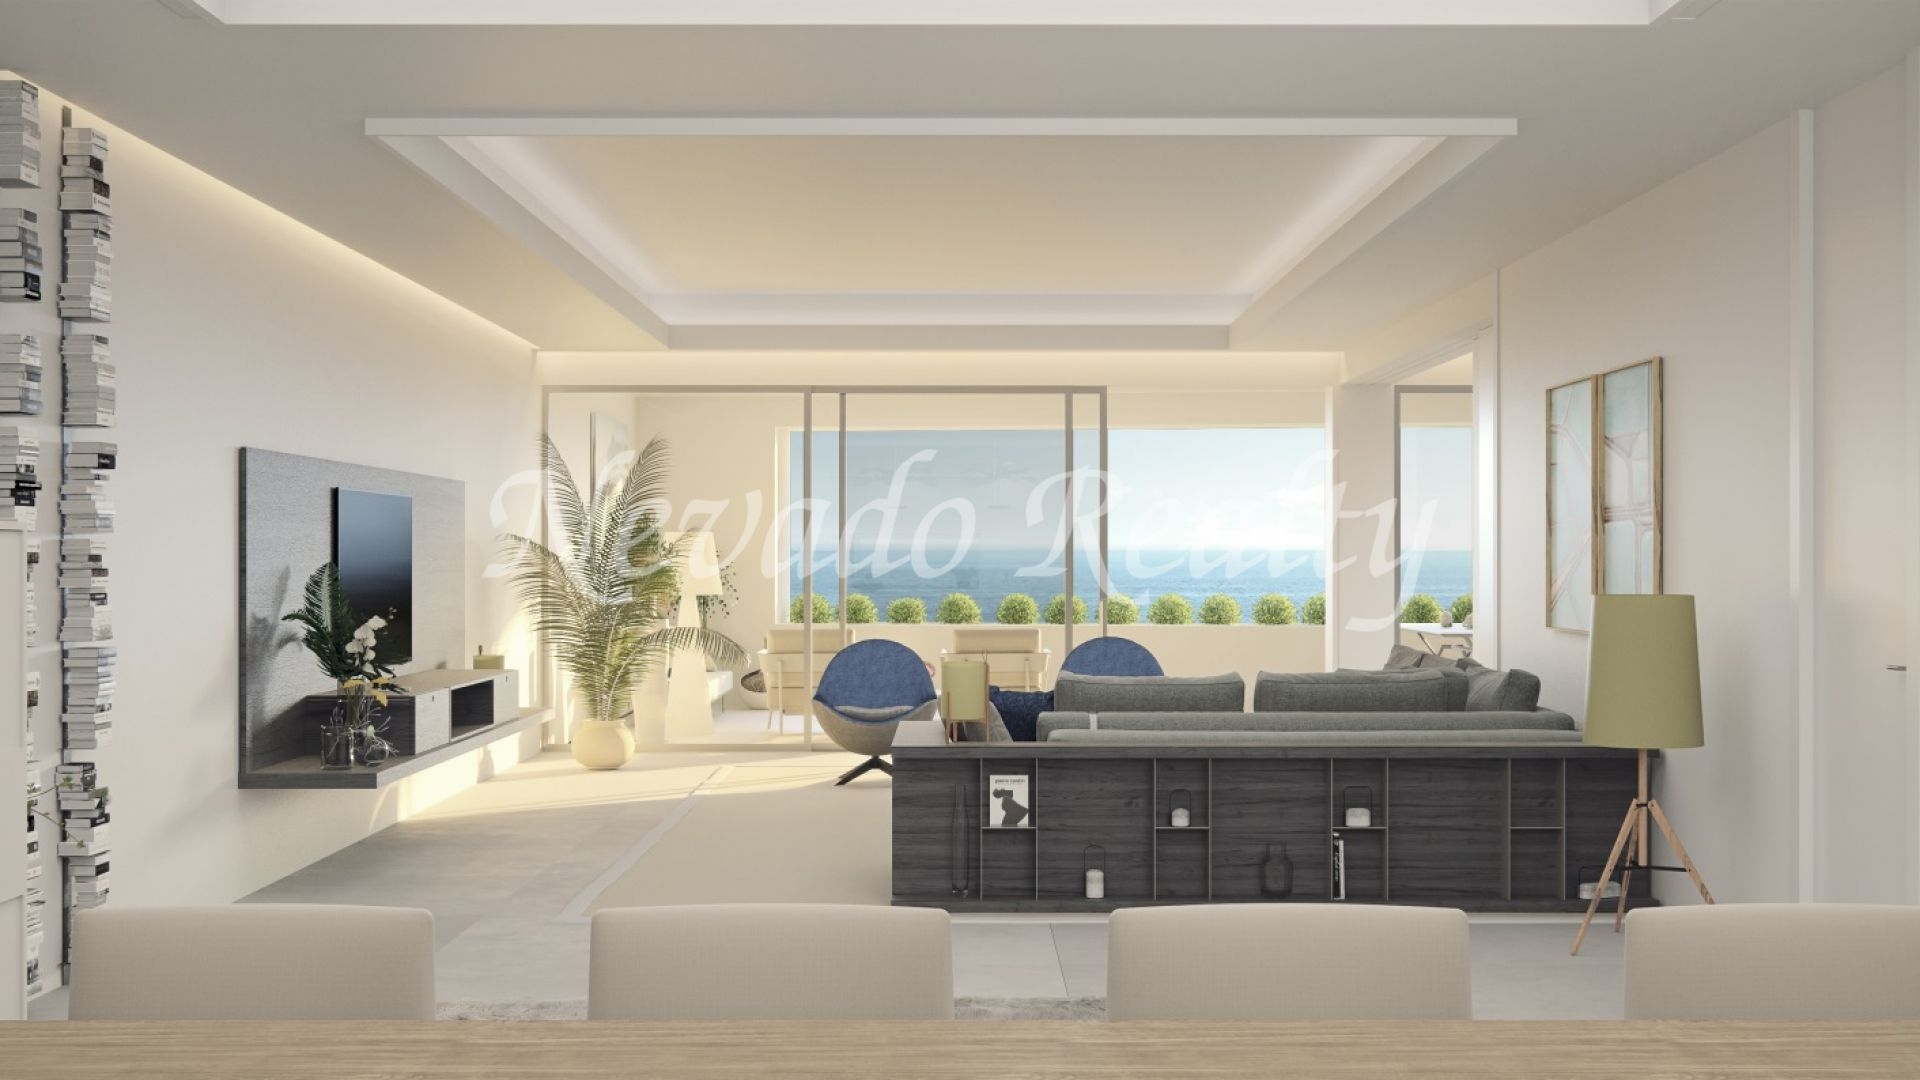 32 Frontline beach apartments under construction